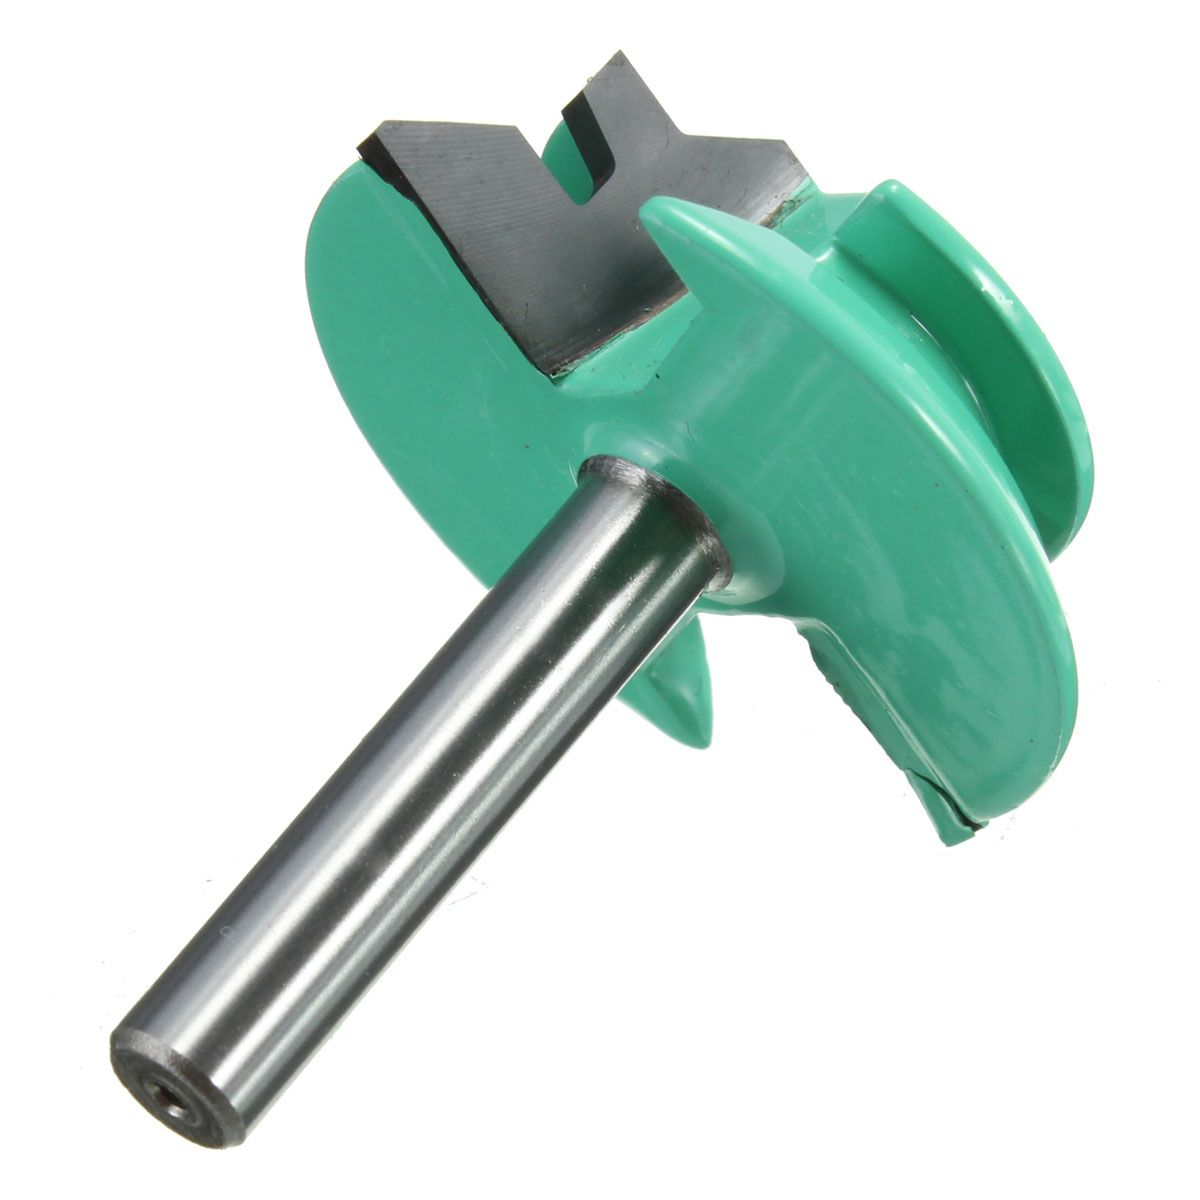 New Arrival 1PC 45 Degree Lock Miter Router Bit 1-1/2